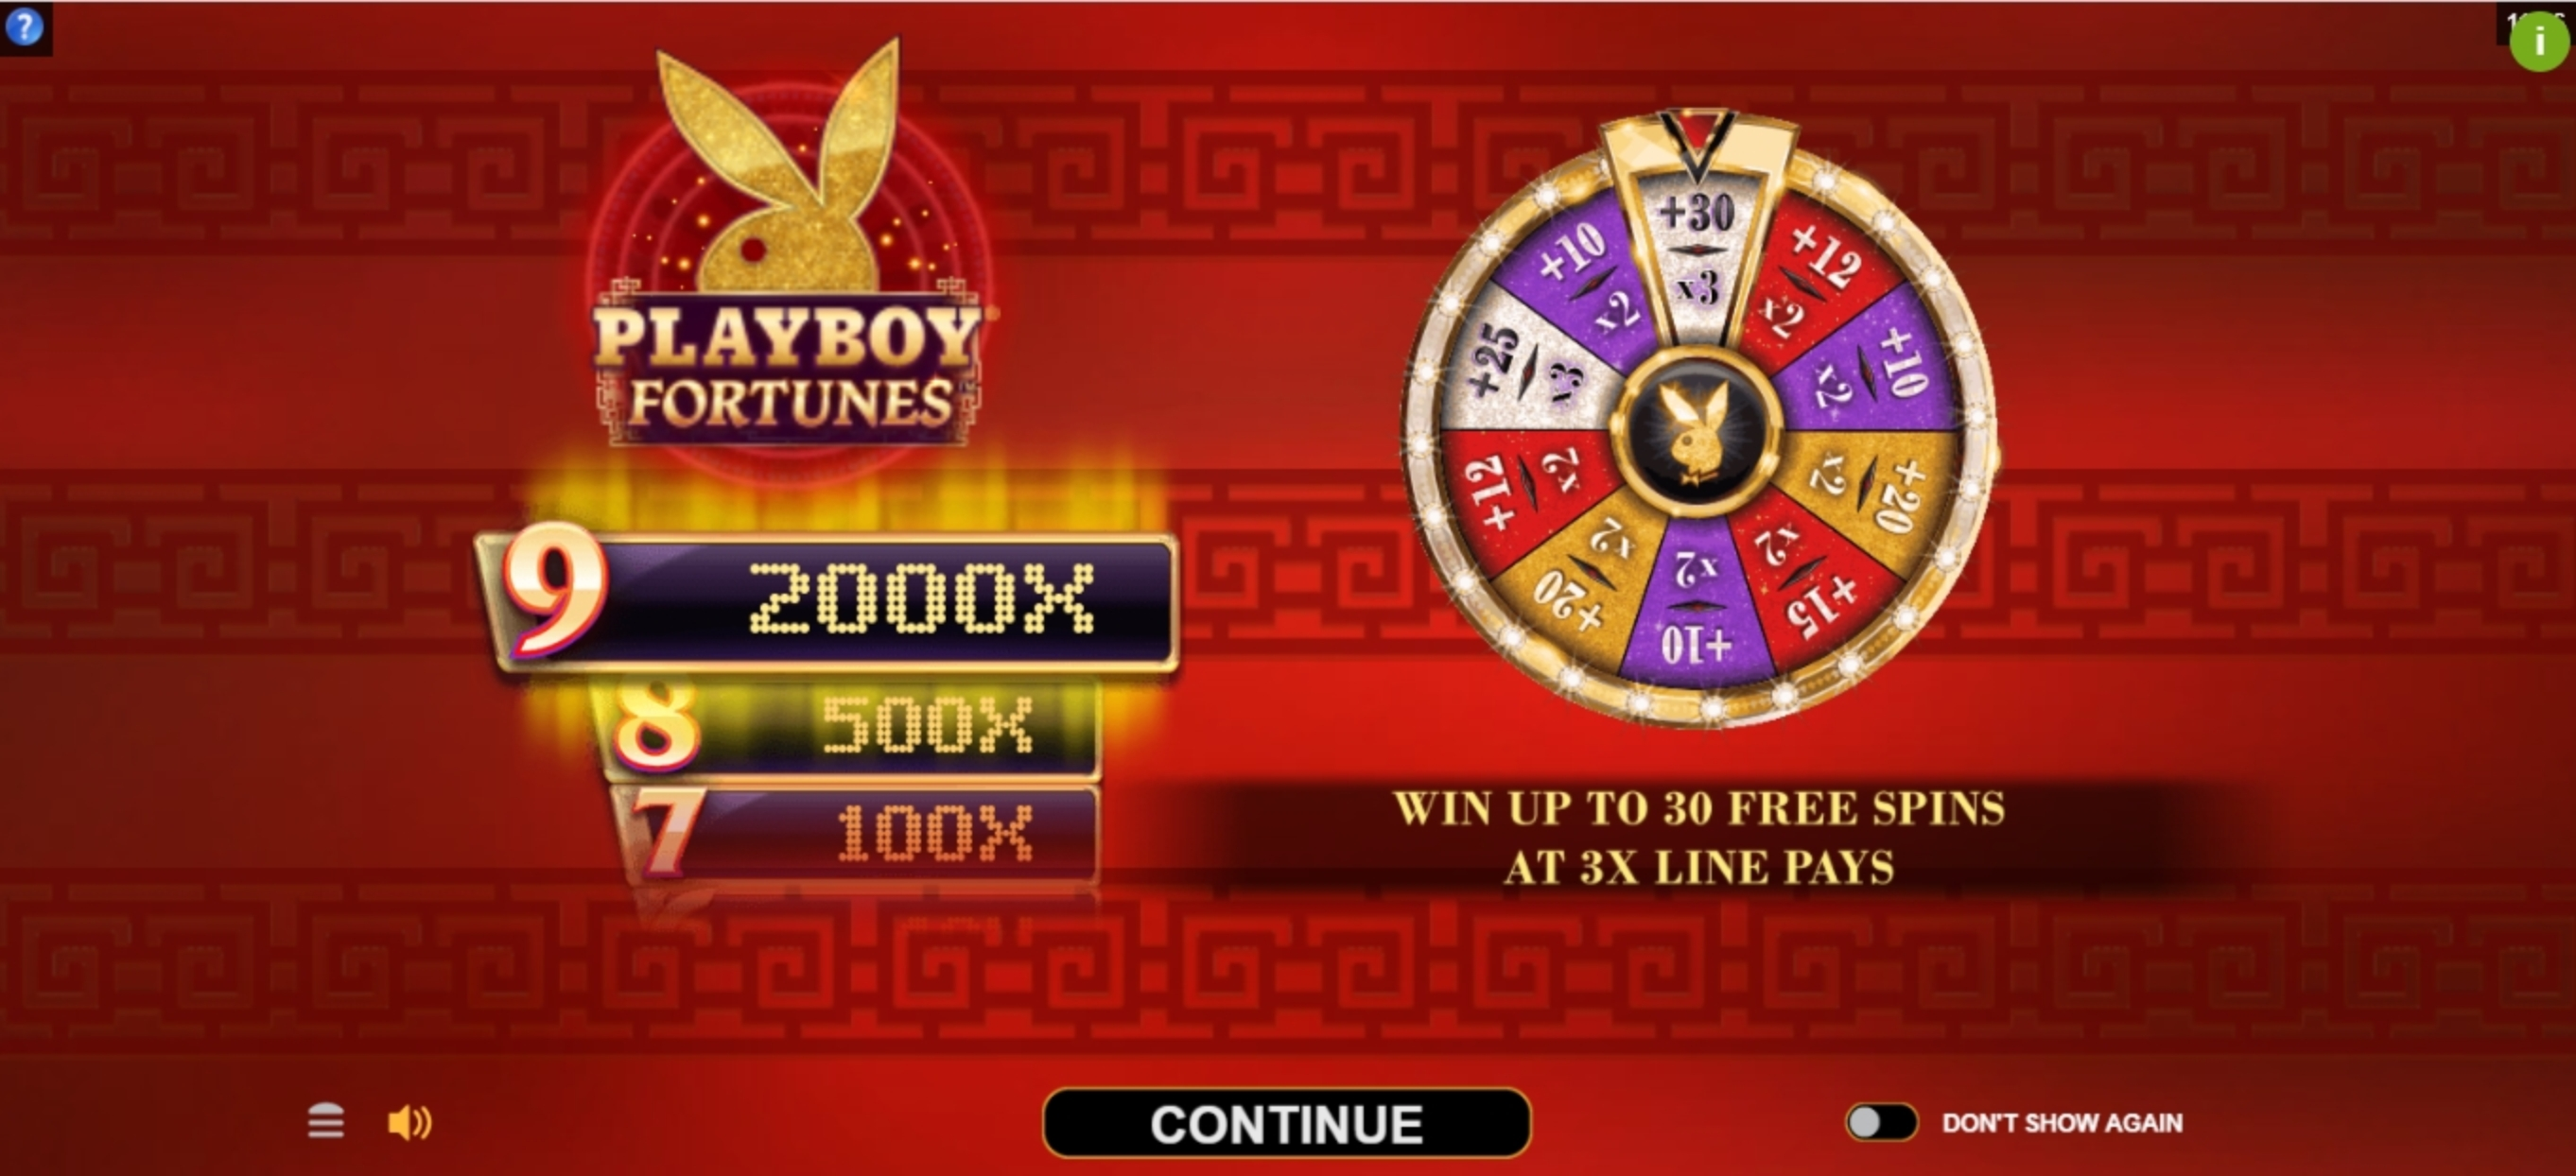 Play Playboy Fortunes Free Casino Slot Game by Gameburger Studios